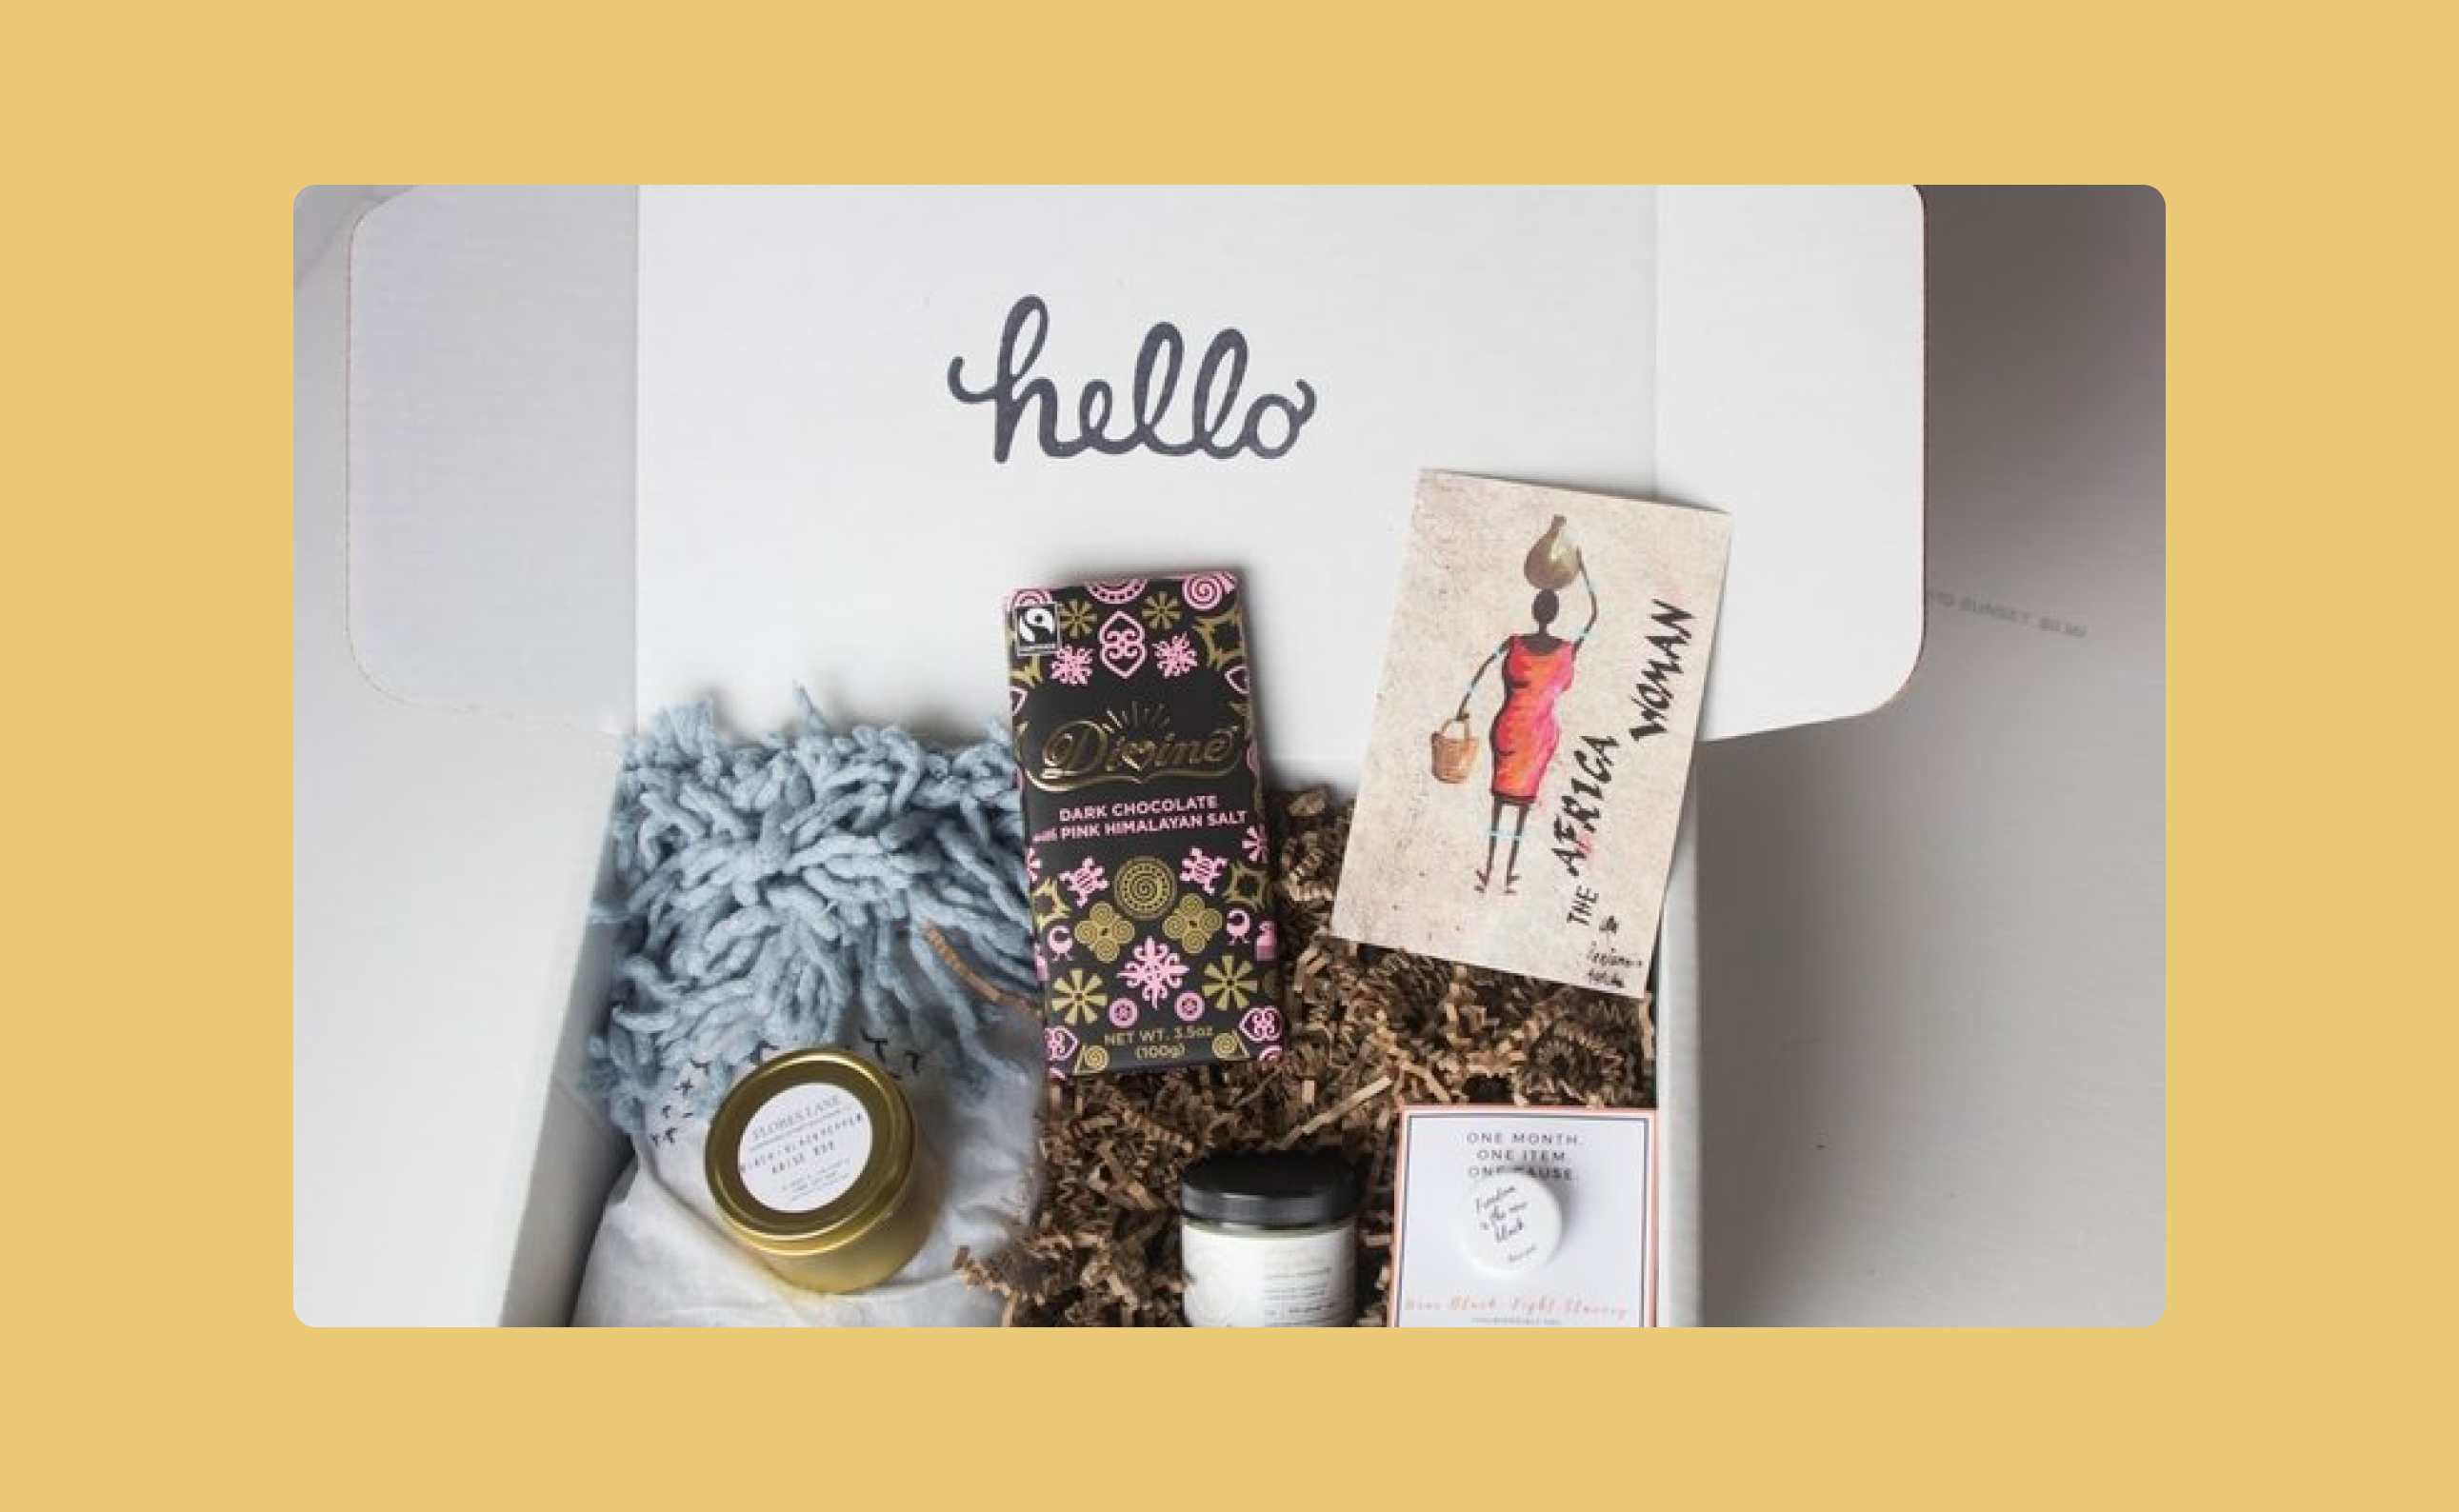 The Arise Box is a monthly subscription box that's working to fight human trafficking.